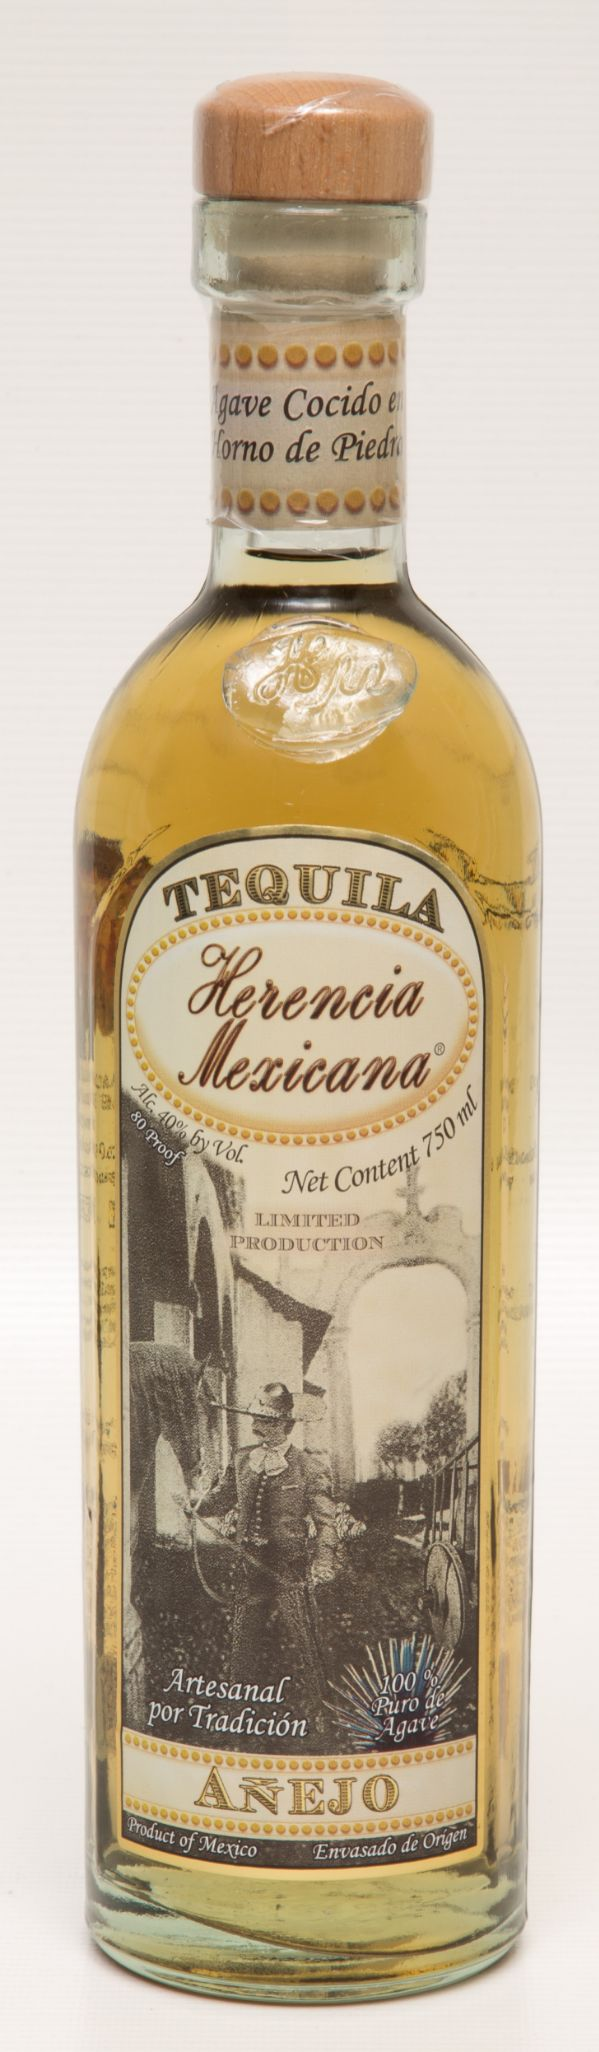 Herencia Mexicana Anejo Tequila